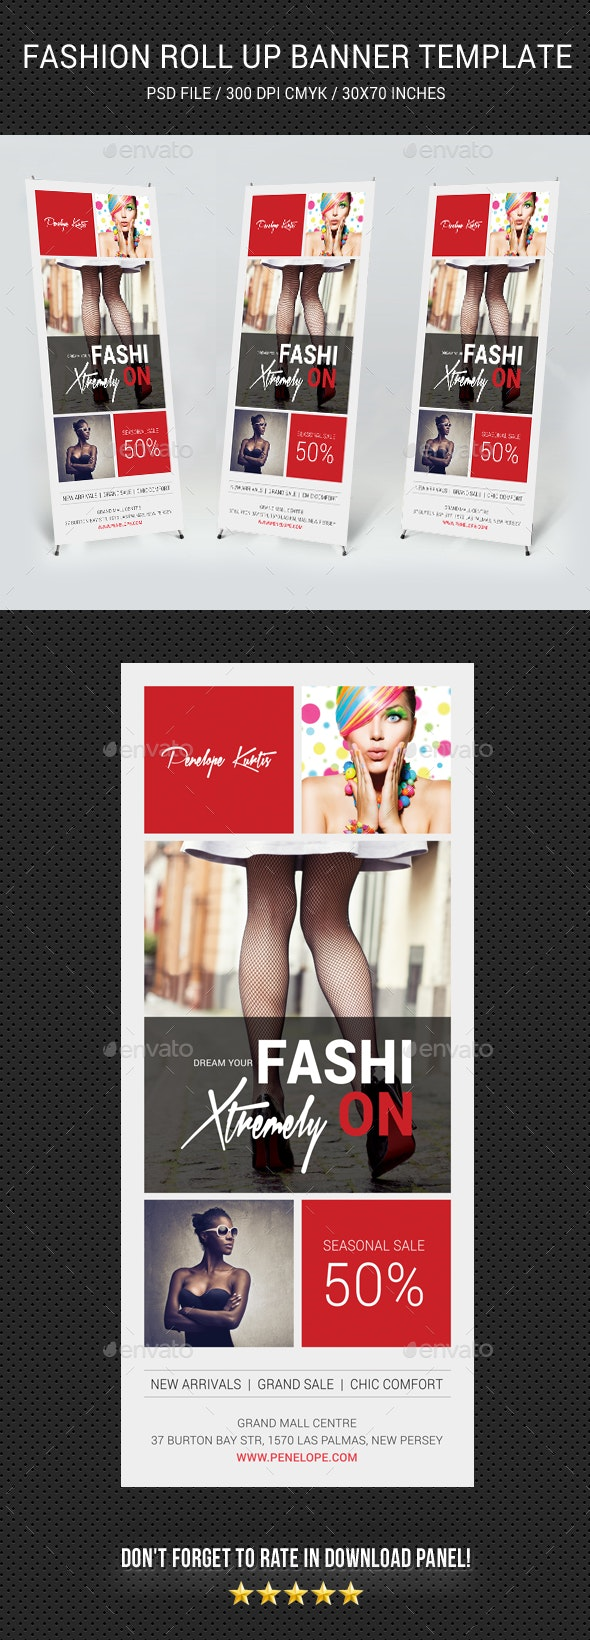 Fashion Roll-Up Banner 08 - Signage Print Templates